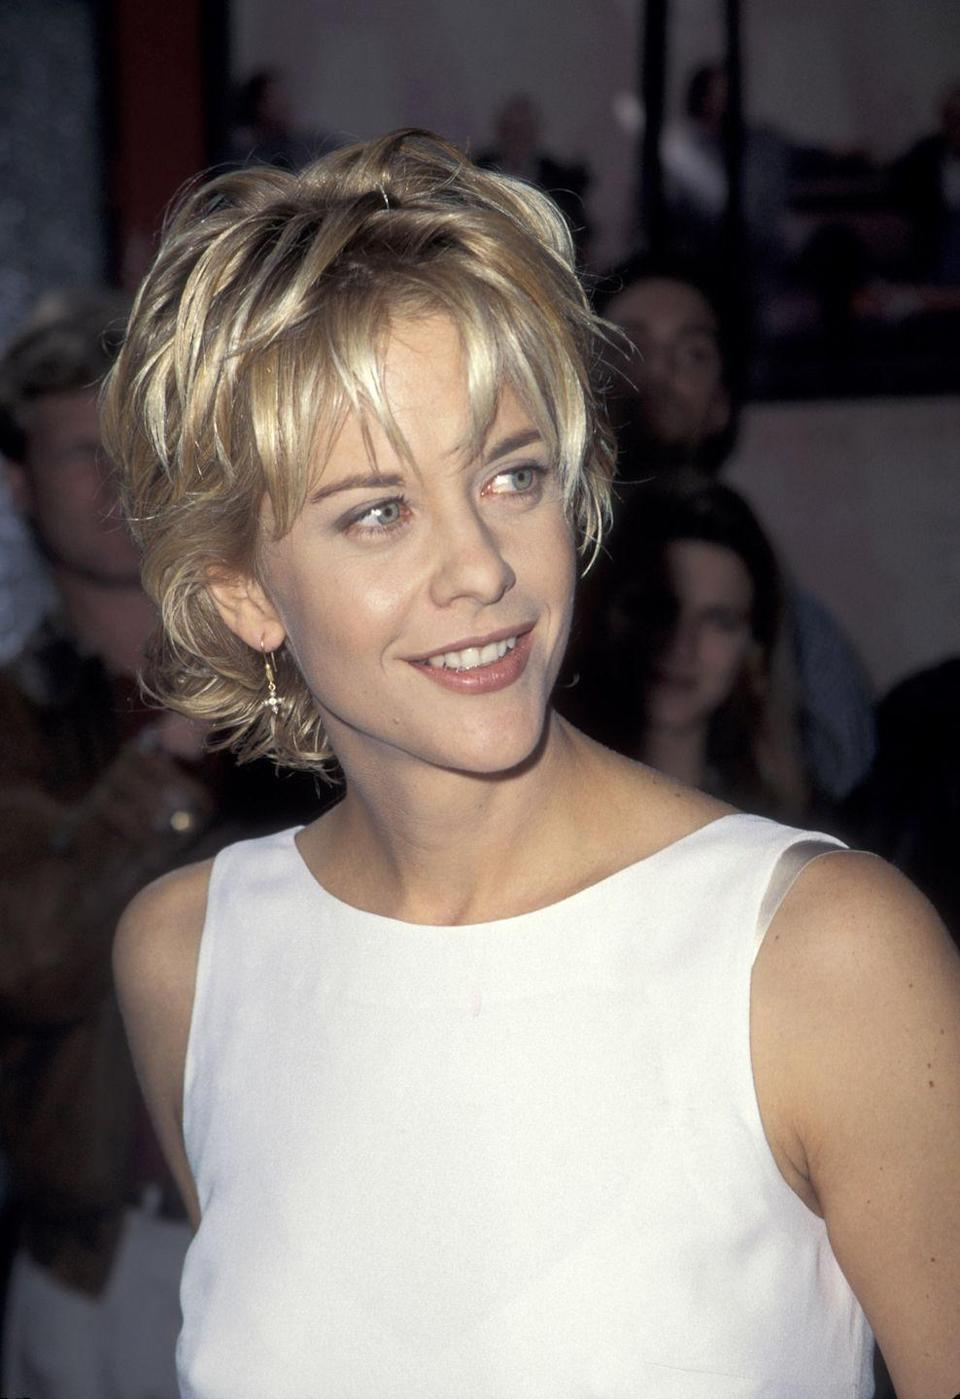 <p>Meg Ryan's starring role in When <em>Harry Met Sally </em>in 1989 paved the way for her status as one of the biggest '90s rom-com stars. She found more success with roles in films like <em>Sleepless in Seattle, You've Got Mail, When A Man Loves A Woman</em>, and <em>City of Angels</em>.</p>